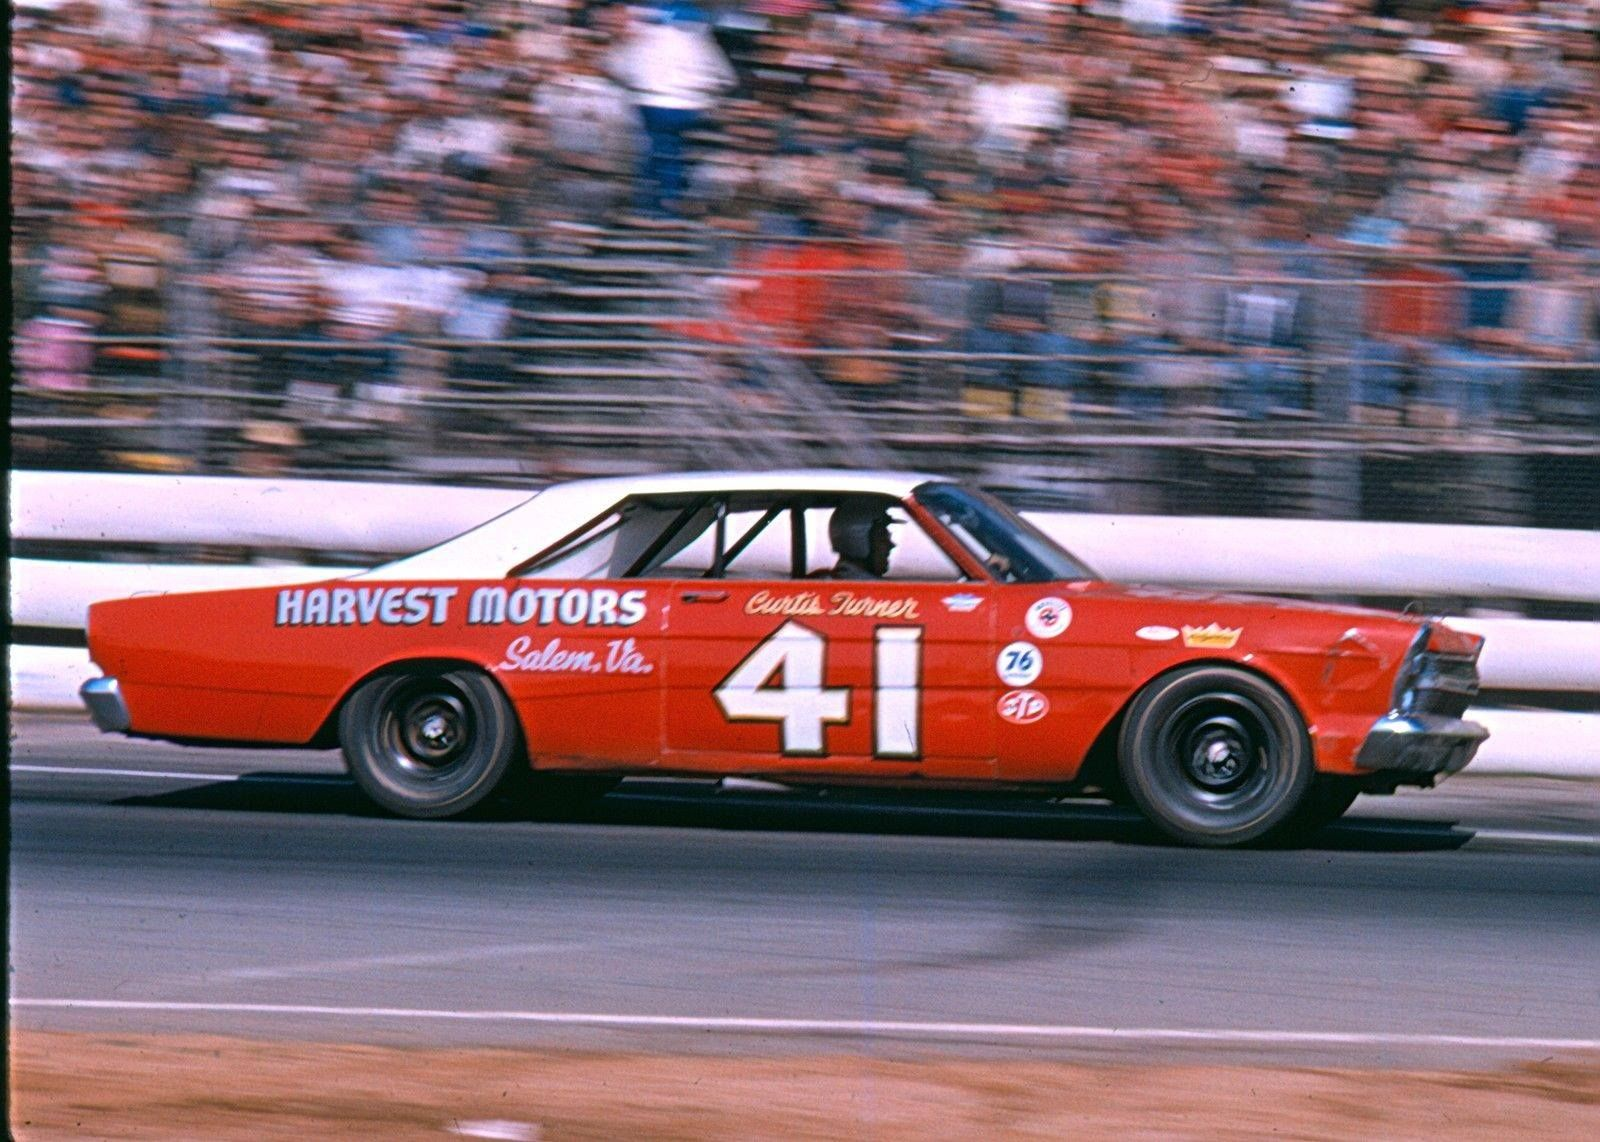 vintage nascar - Bing Images | Cars and Auto Racing | Pinterest ...